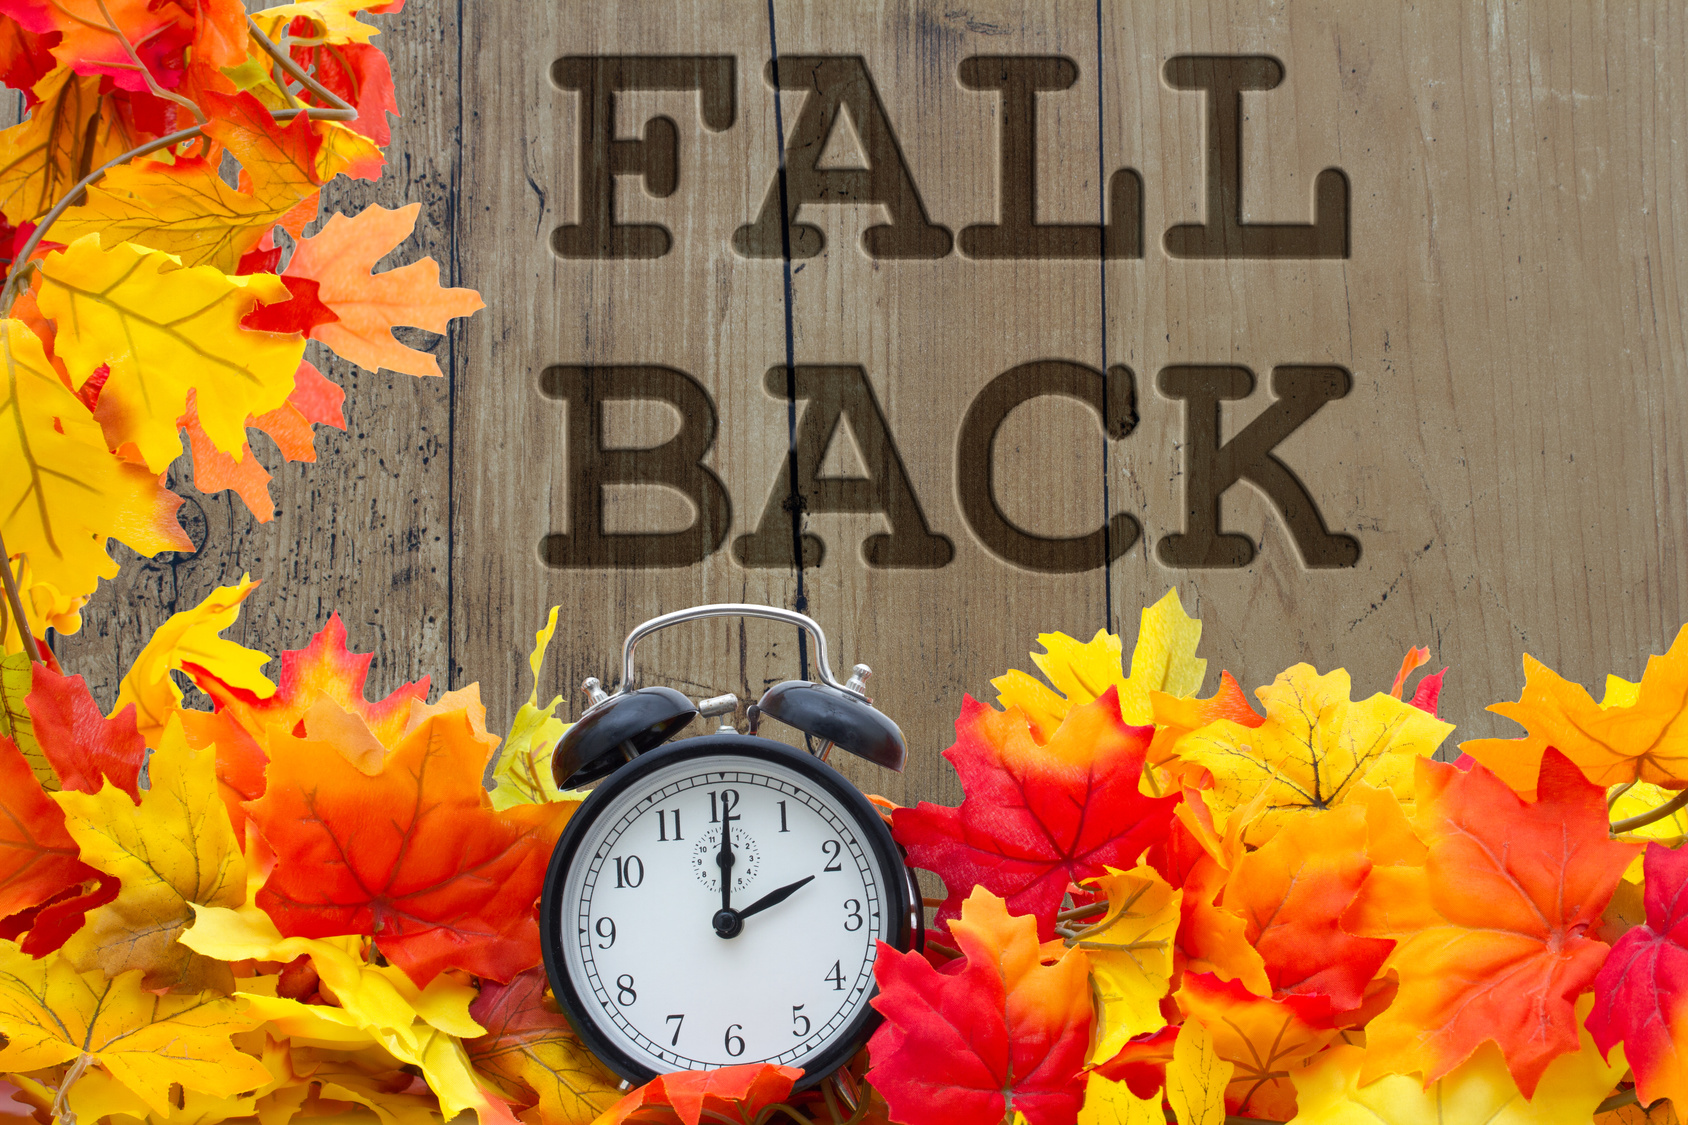 Fallback 2015 - time change reminder